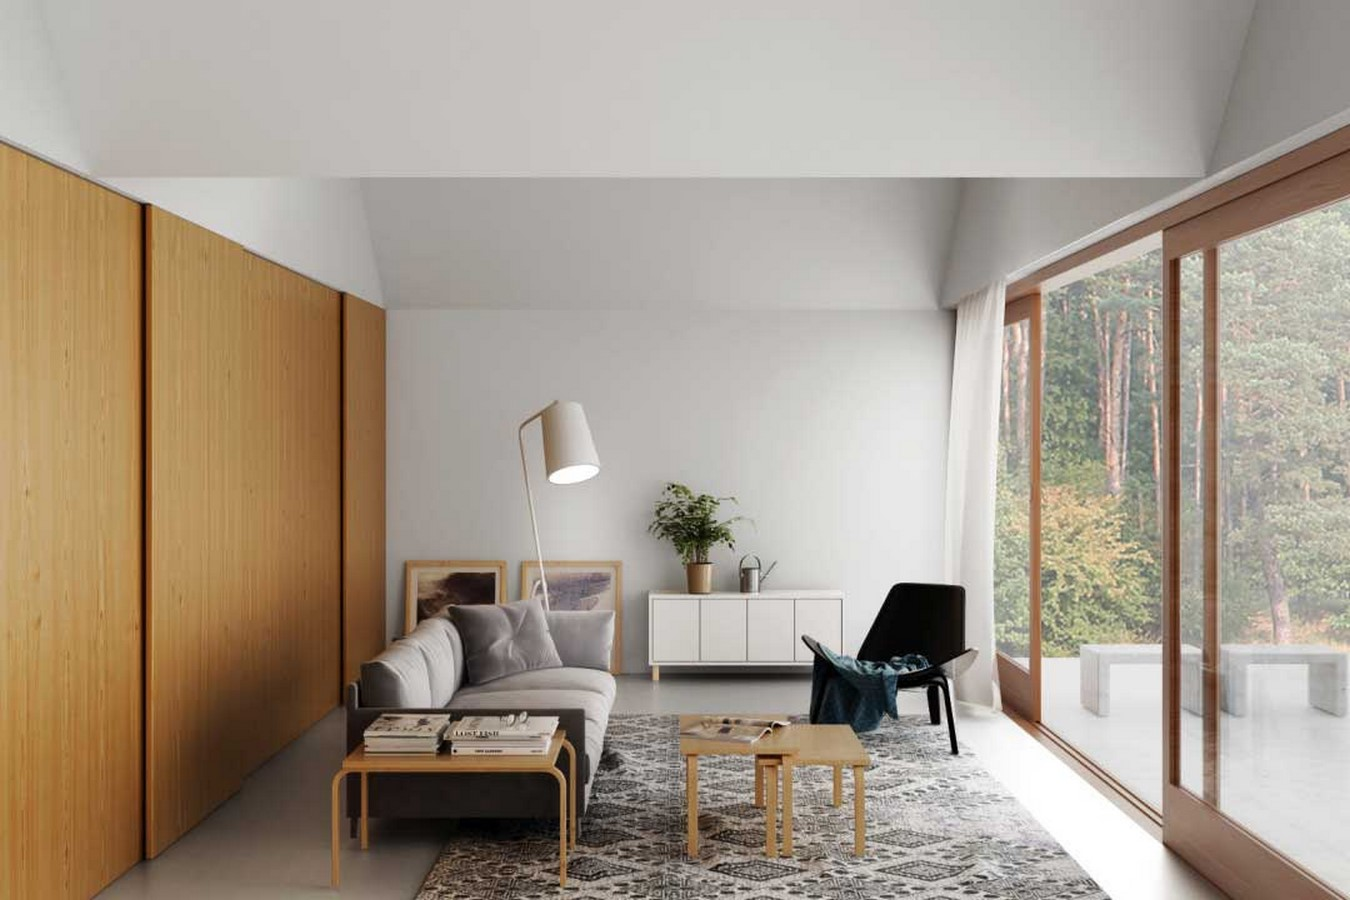 How minimalistic designs are creating large impact in the 21st century? - Sheet1